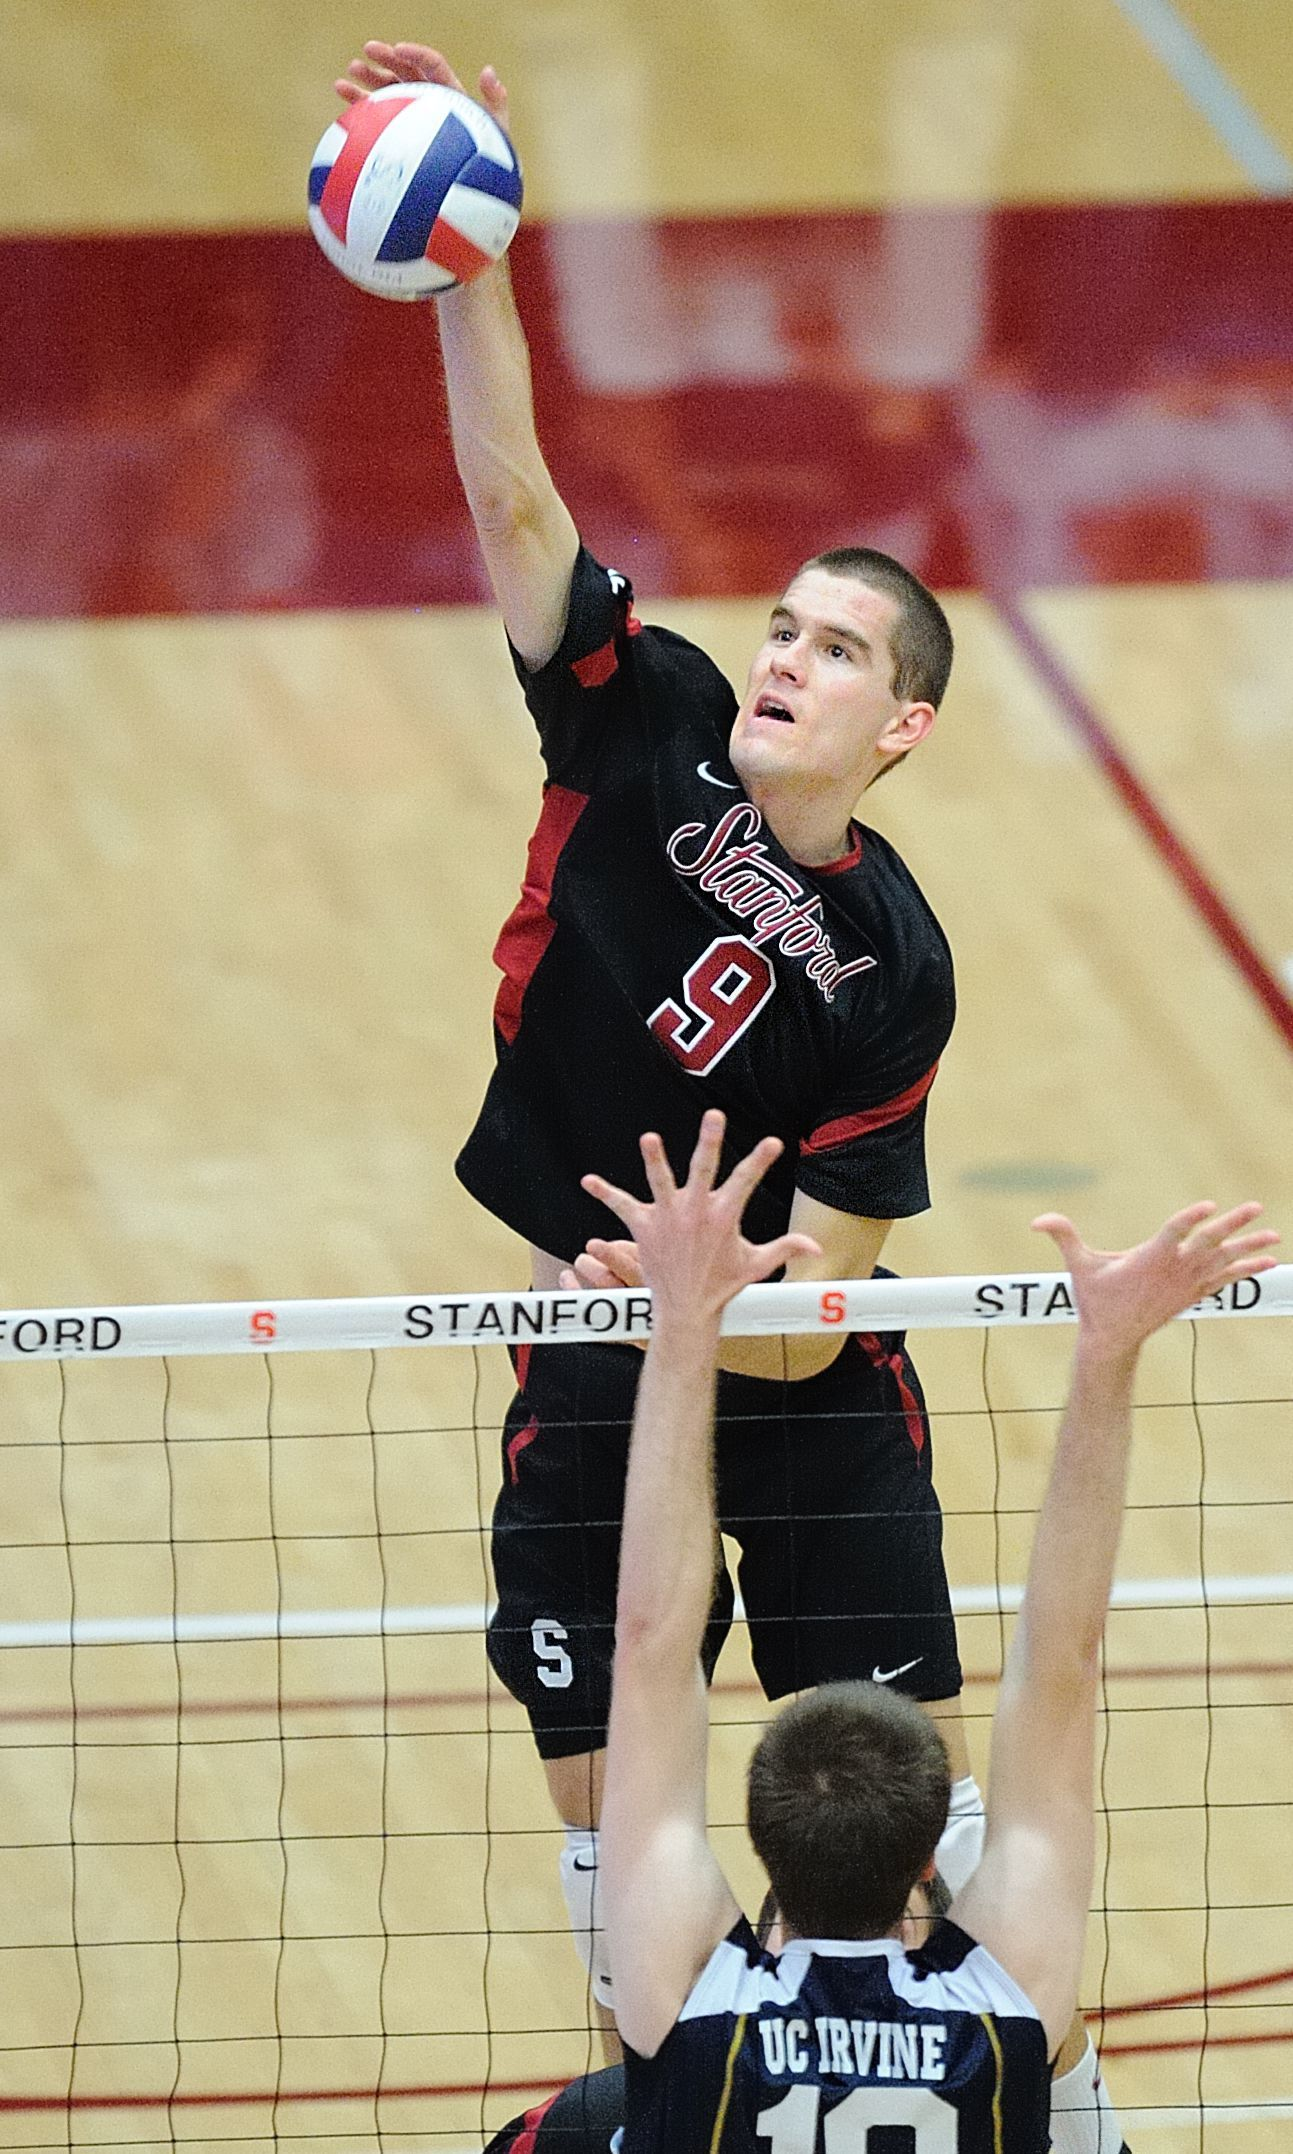 Are You Hitting A Volleyball As Hard As You Can Volleyball Training Coaching Volleyball Volleyball Drills